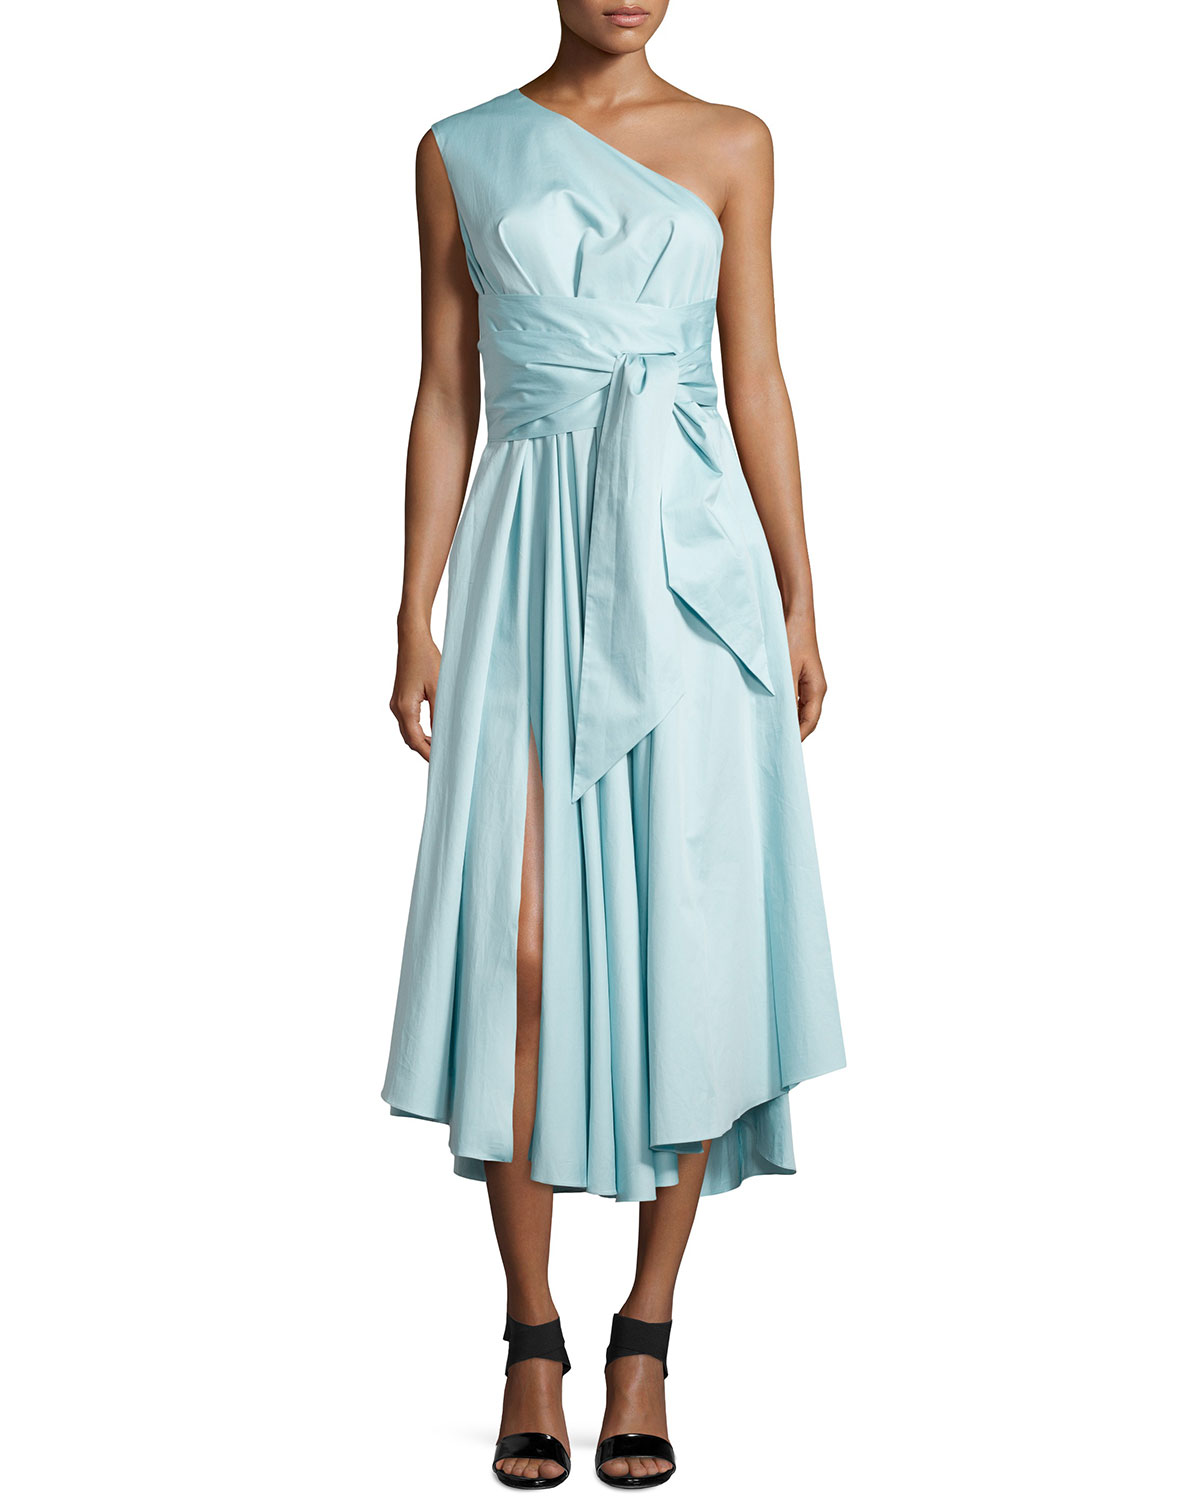 Satin Poplin One-Shoulder Wrap Dress, Size: 0, MIZU BLUE - Tibi